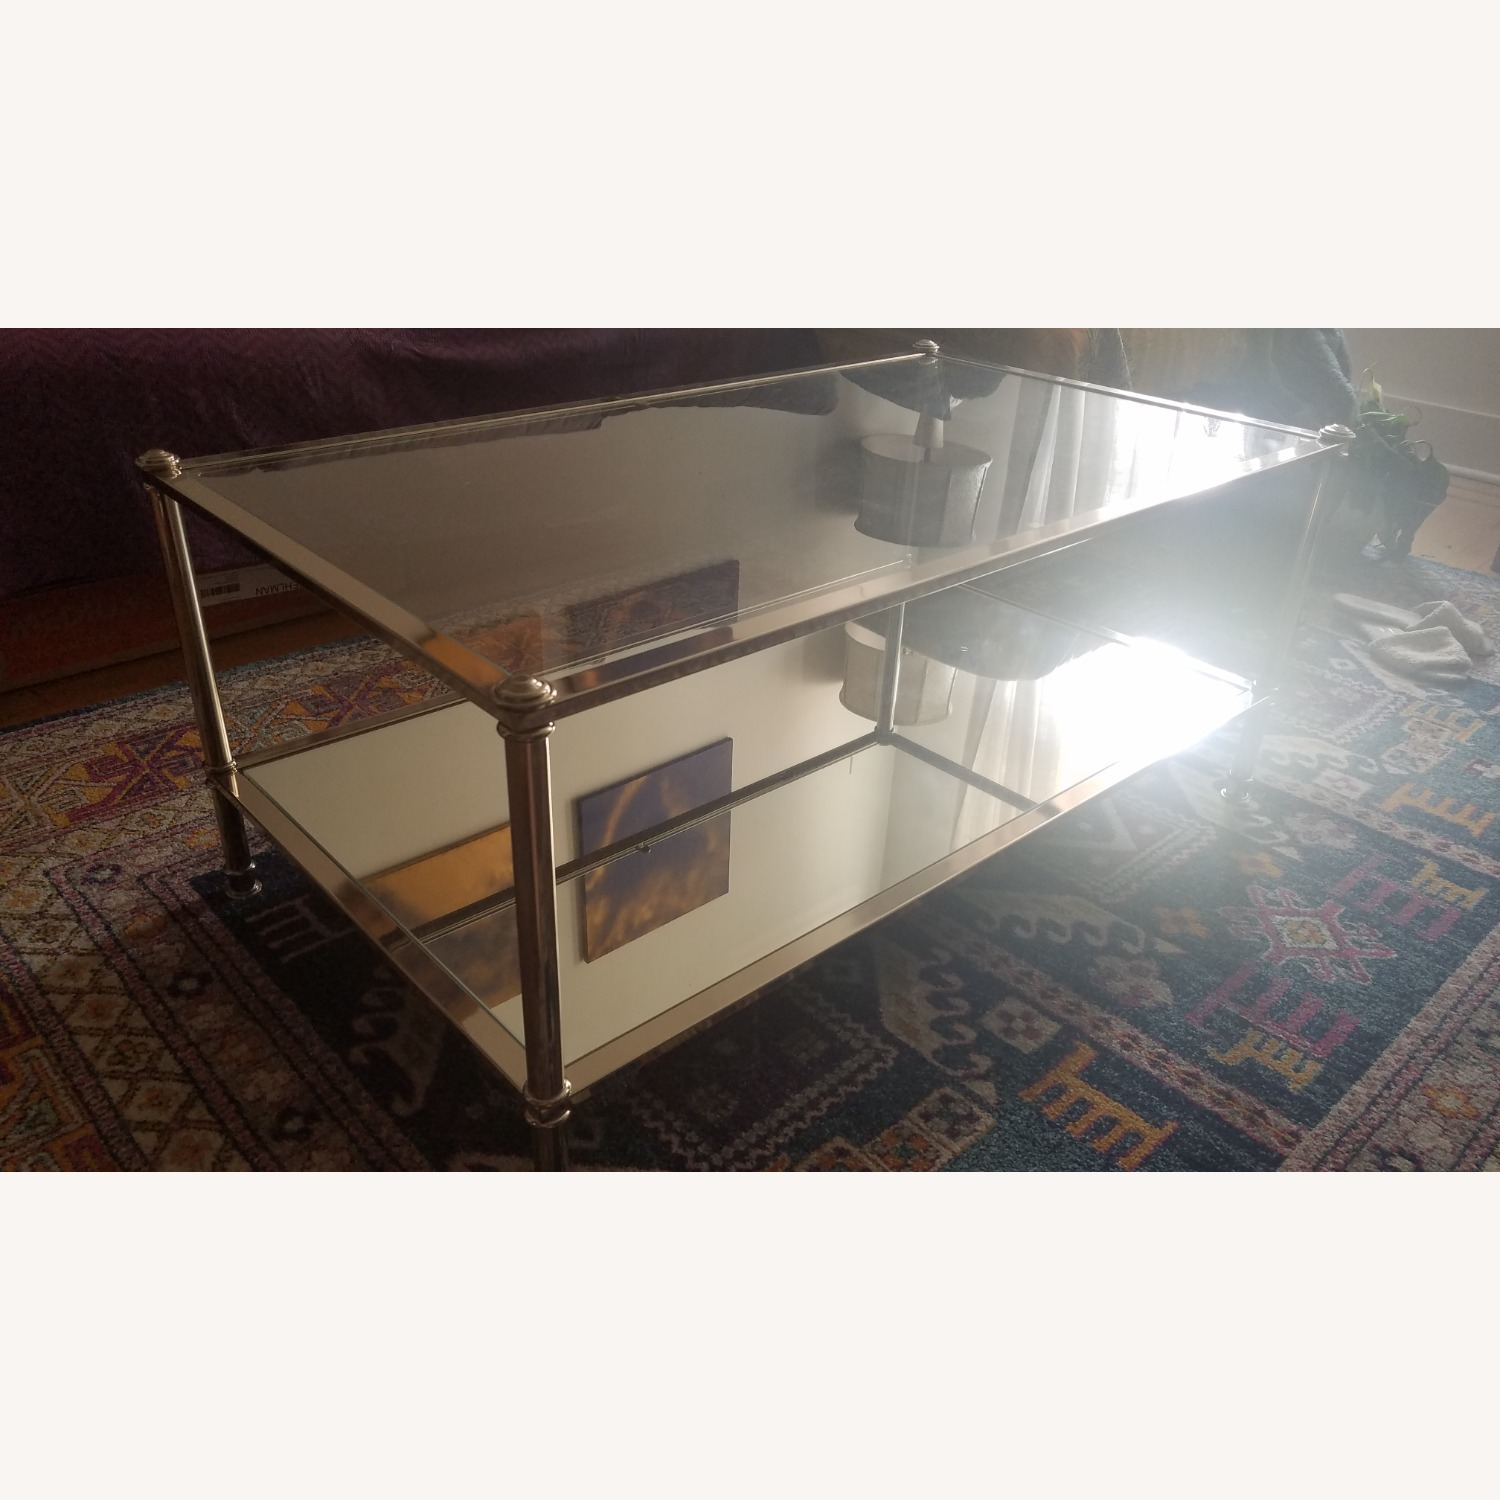 Wayfair Atticus Glass and Silver Coffee Table - image-3